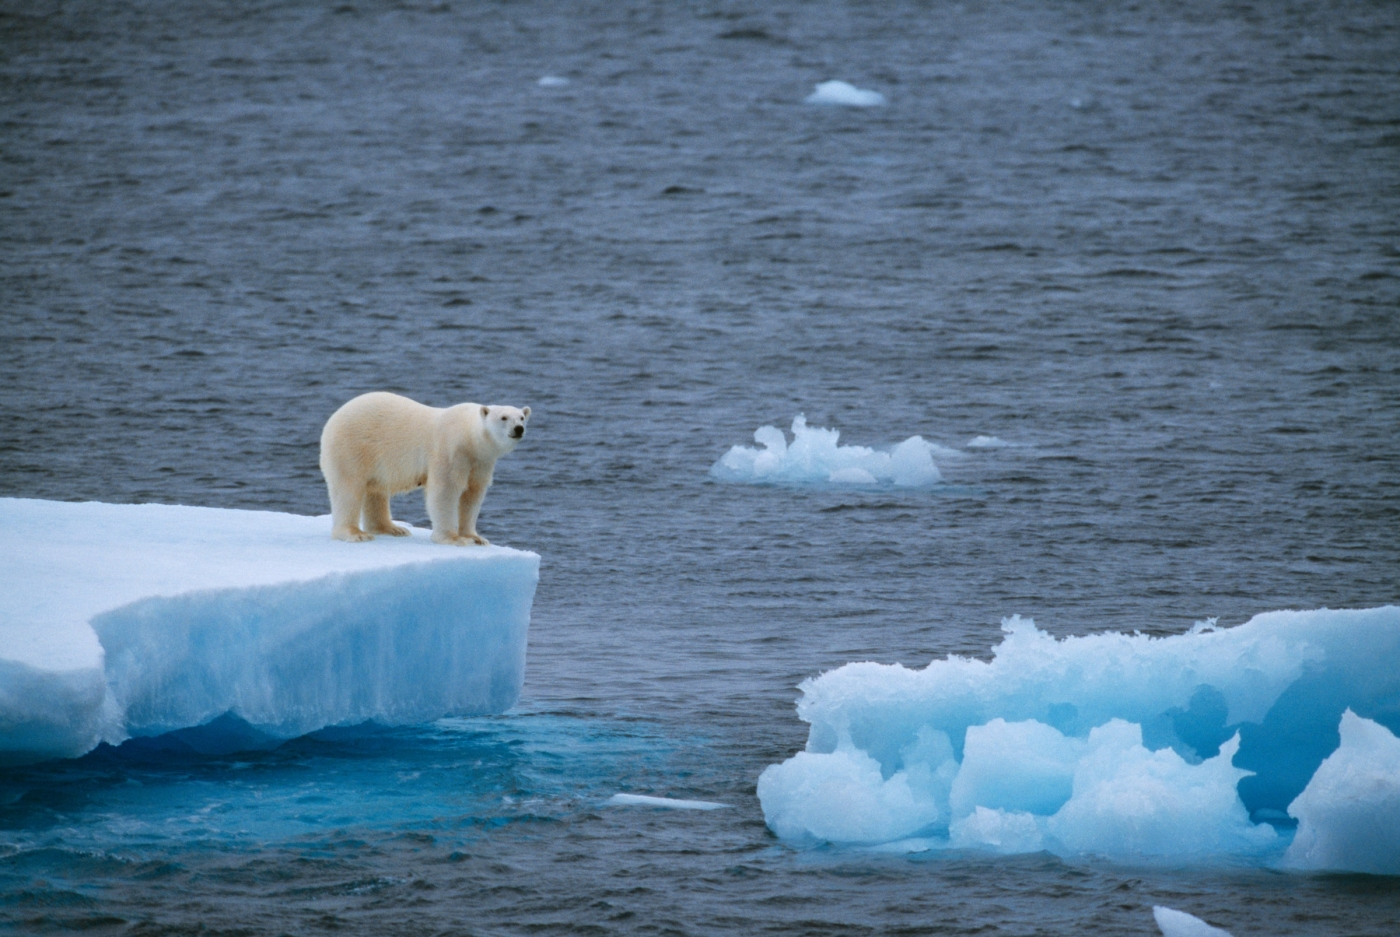 Polar bear on small iceberg. Photo by Staffan Widstrand - Visit Greenland.